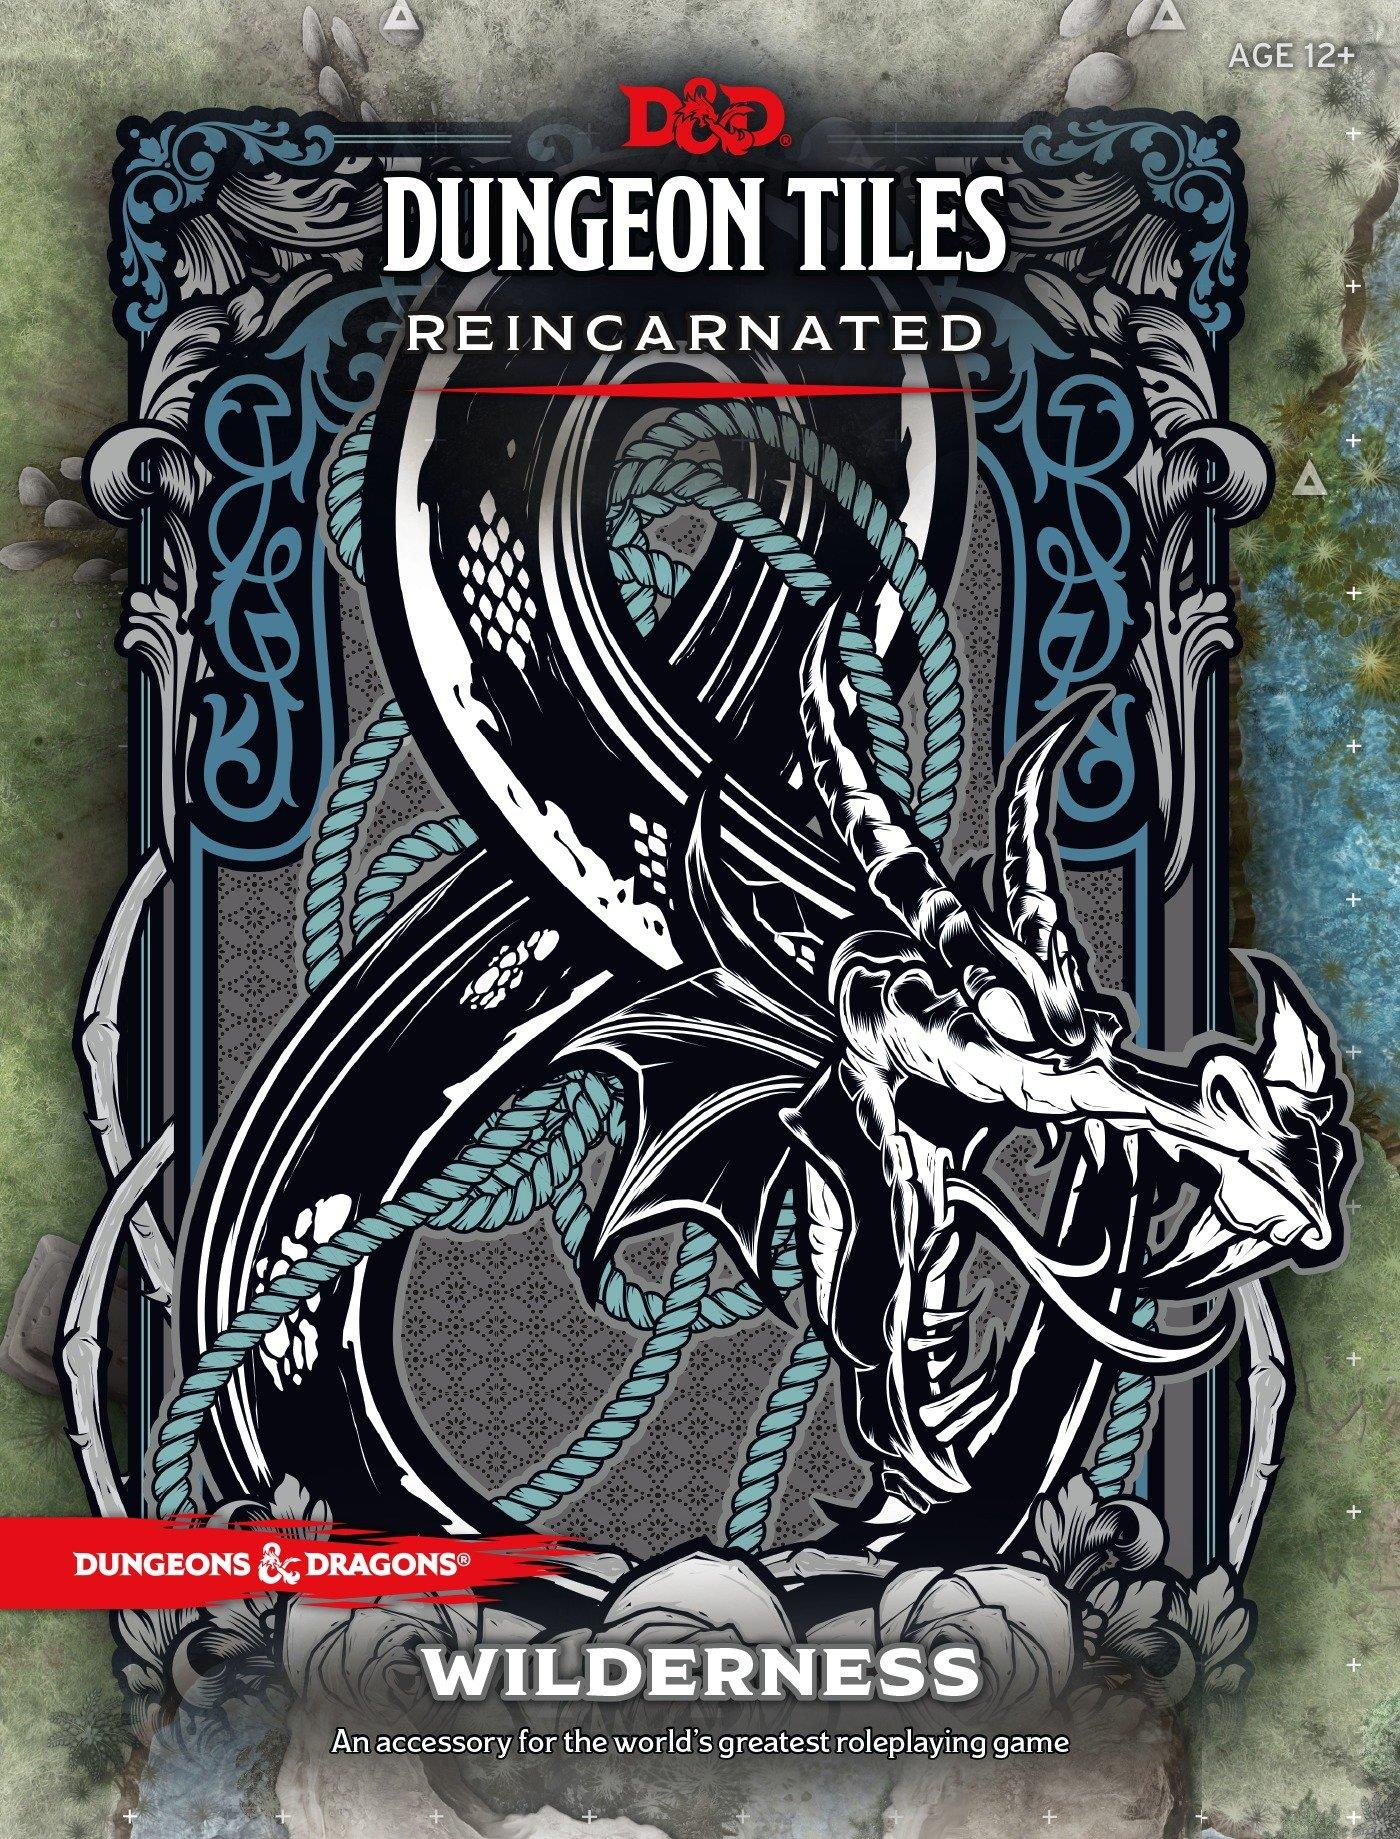 DUNGEONS AND DRAGONS DUNGEON TILES REINCARNATED WILDERNESS WOCC